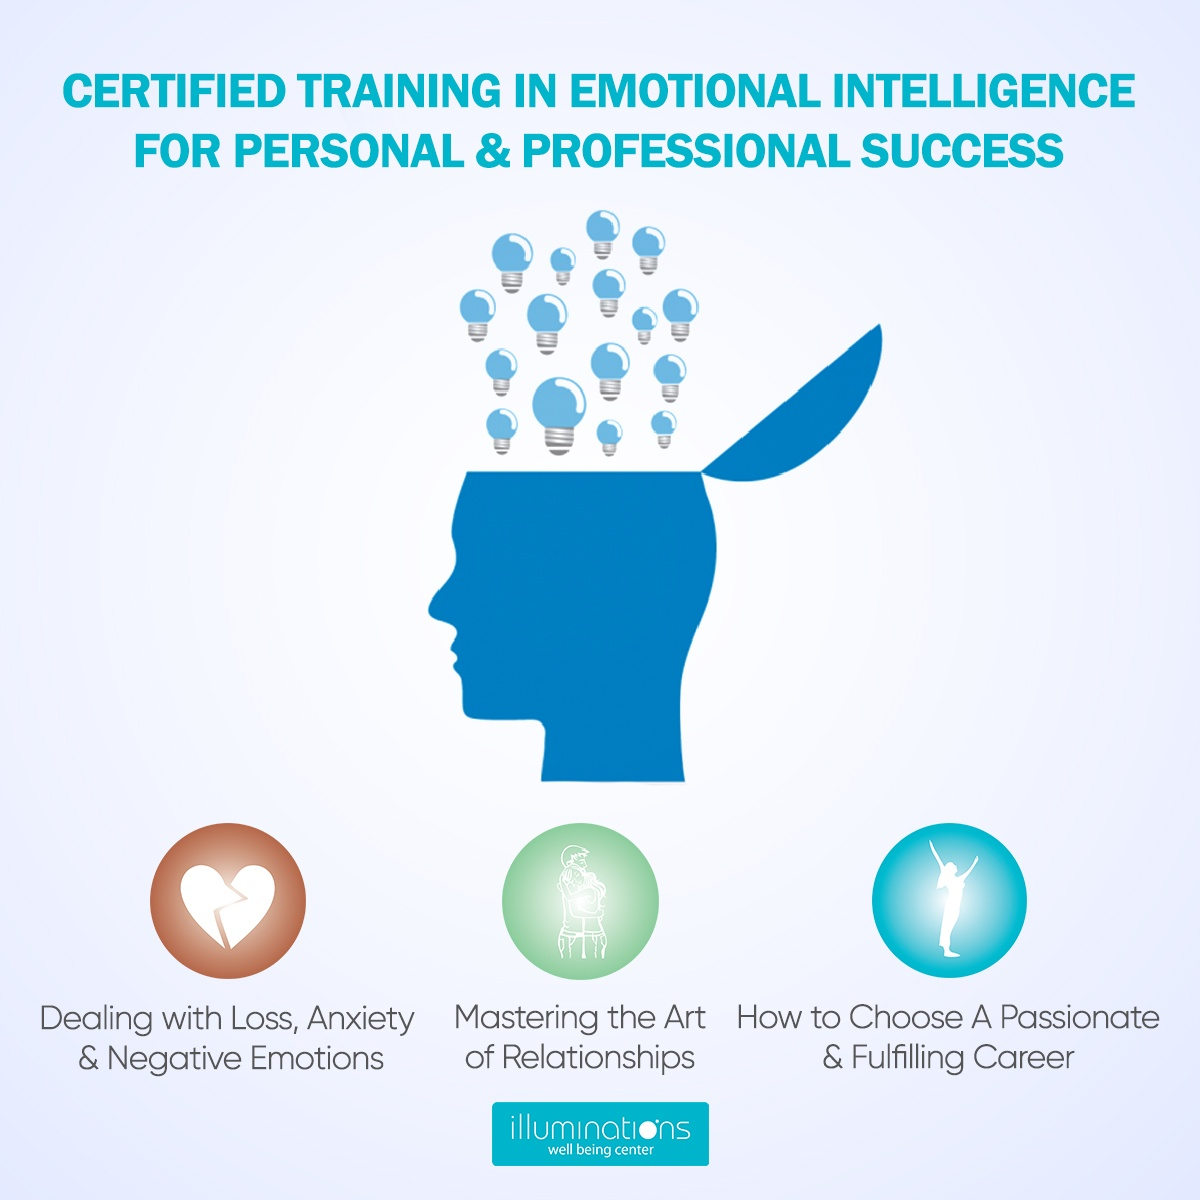 MOTIONAL-INTELLIGENCE-TRAINING-PROGRAM